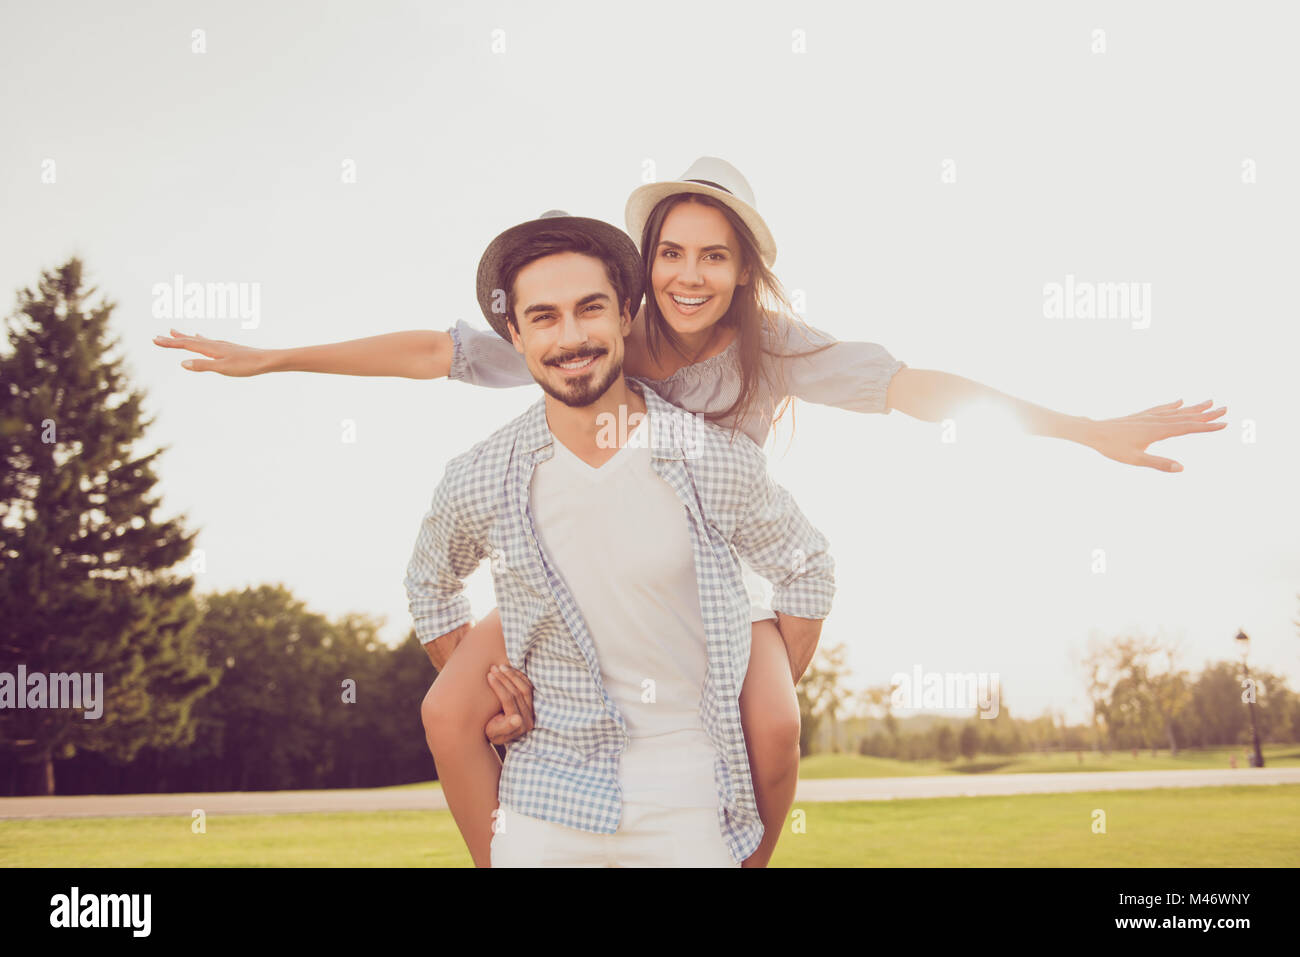 Date outside, well dressed, excited, lovely. Good day, happiness, friendship, stroll, holiday, fly, freedom concept. - Stock Image